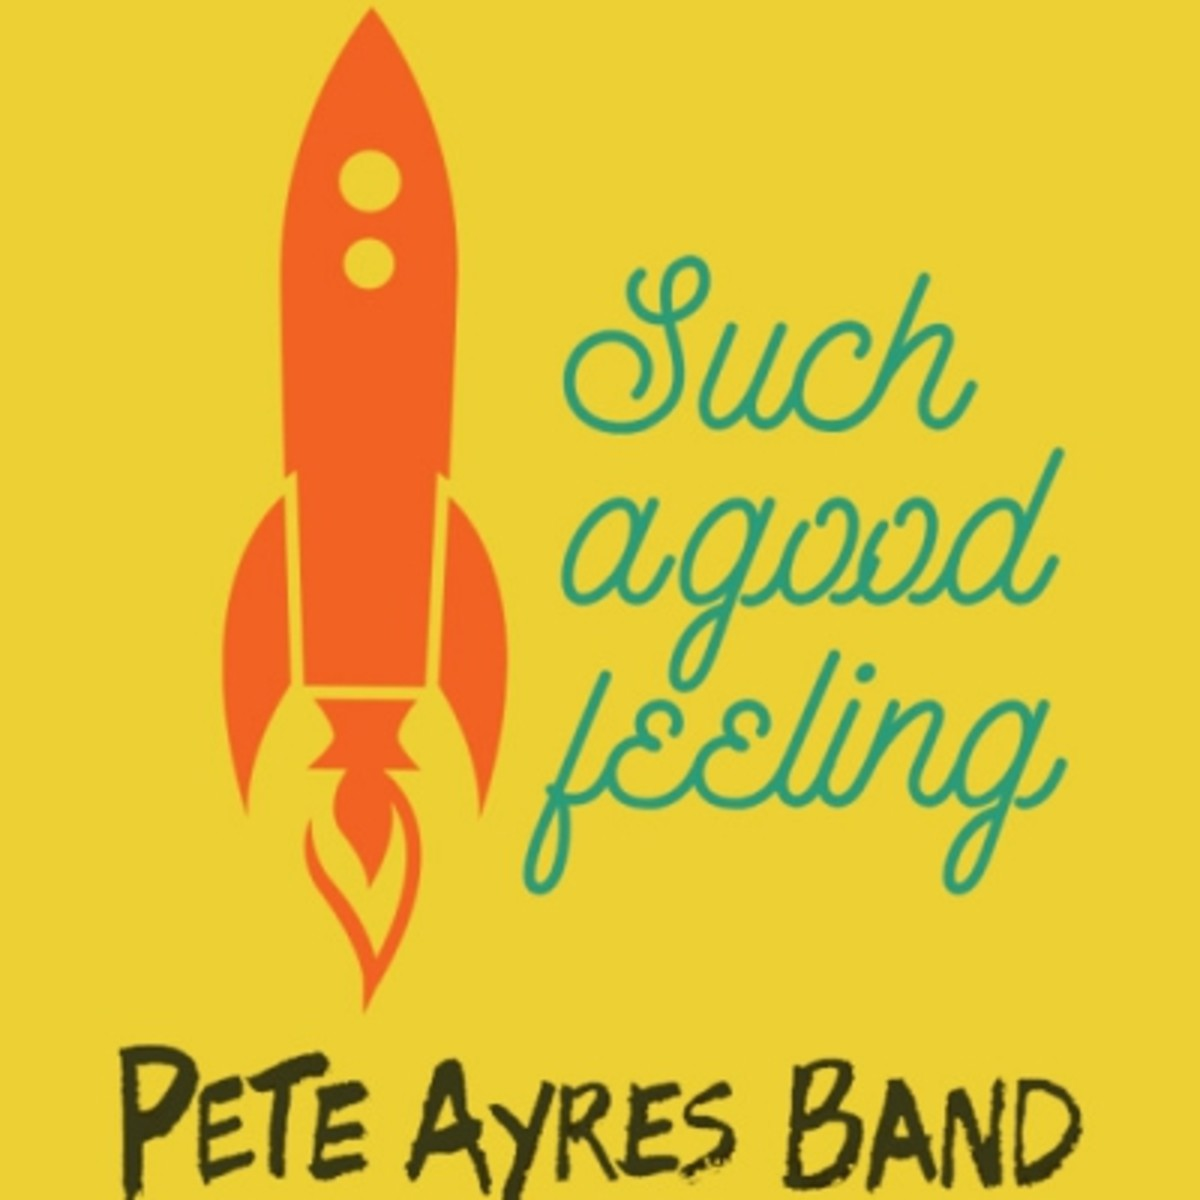 pete-ayres-band-such-a-good-feeling.jpg